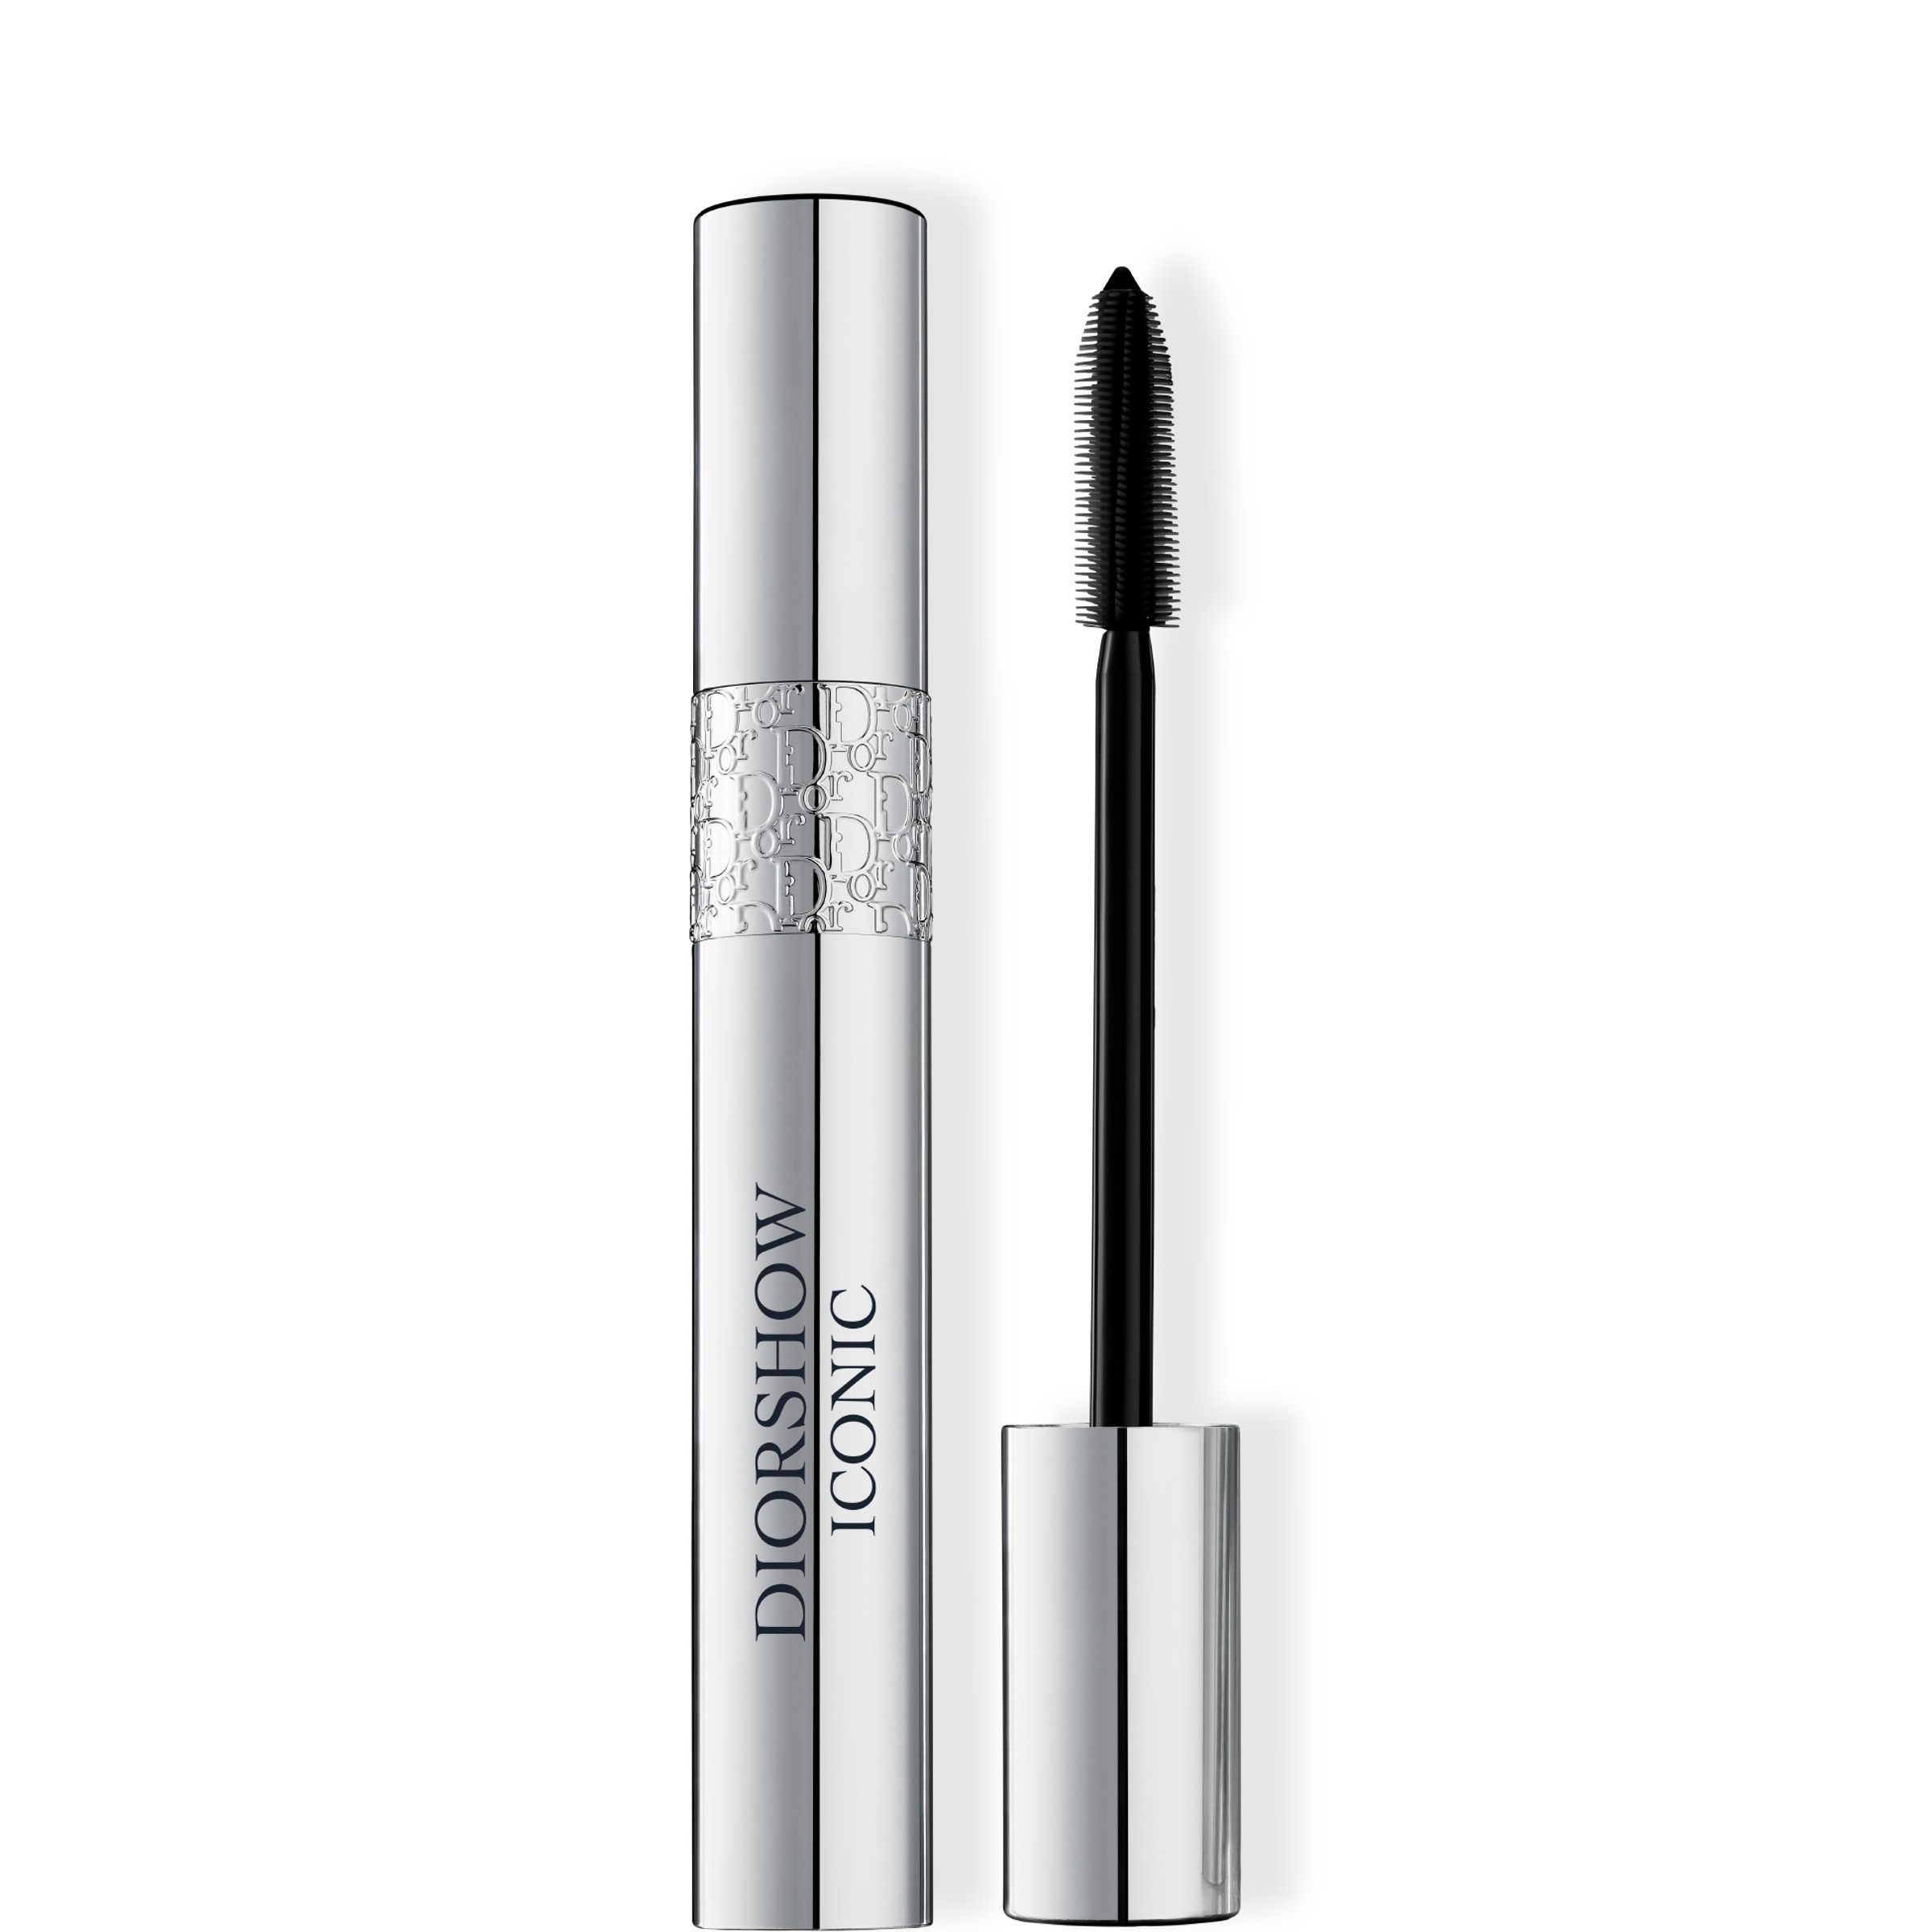 Diorshow Iconic Mascara Black